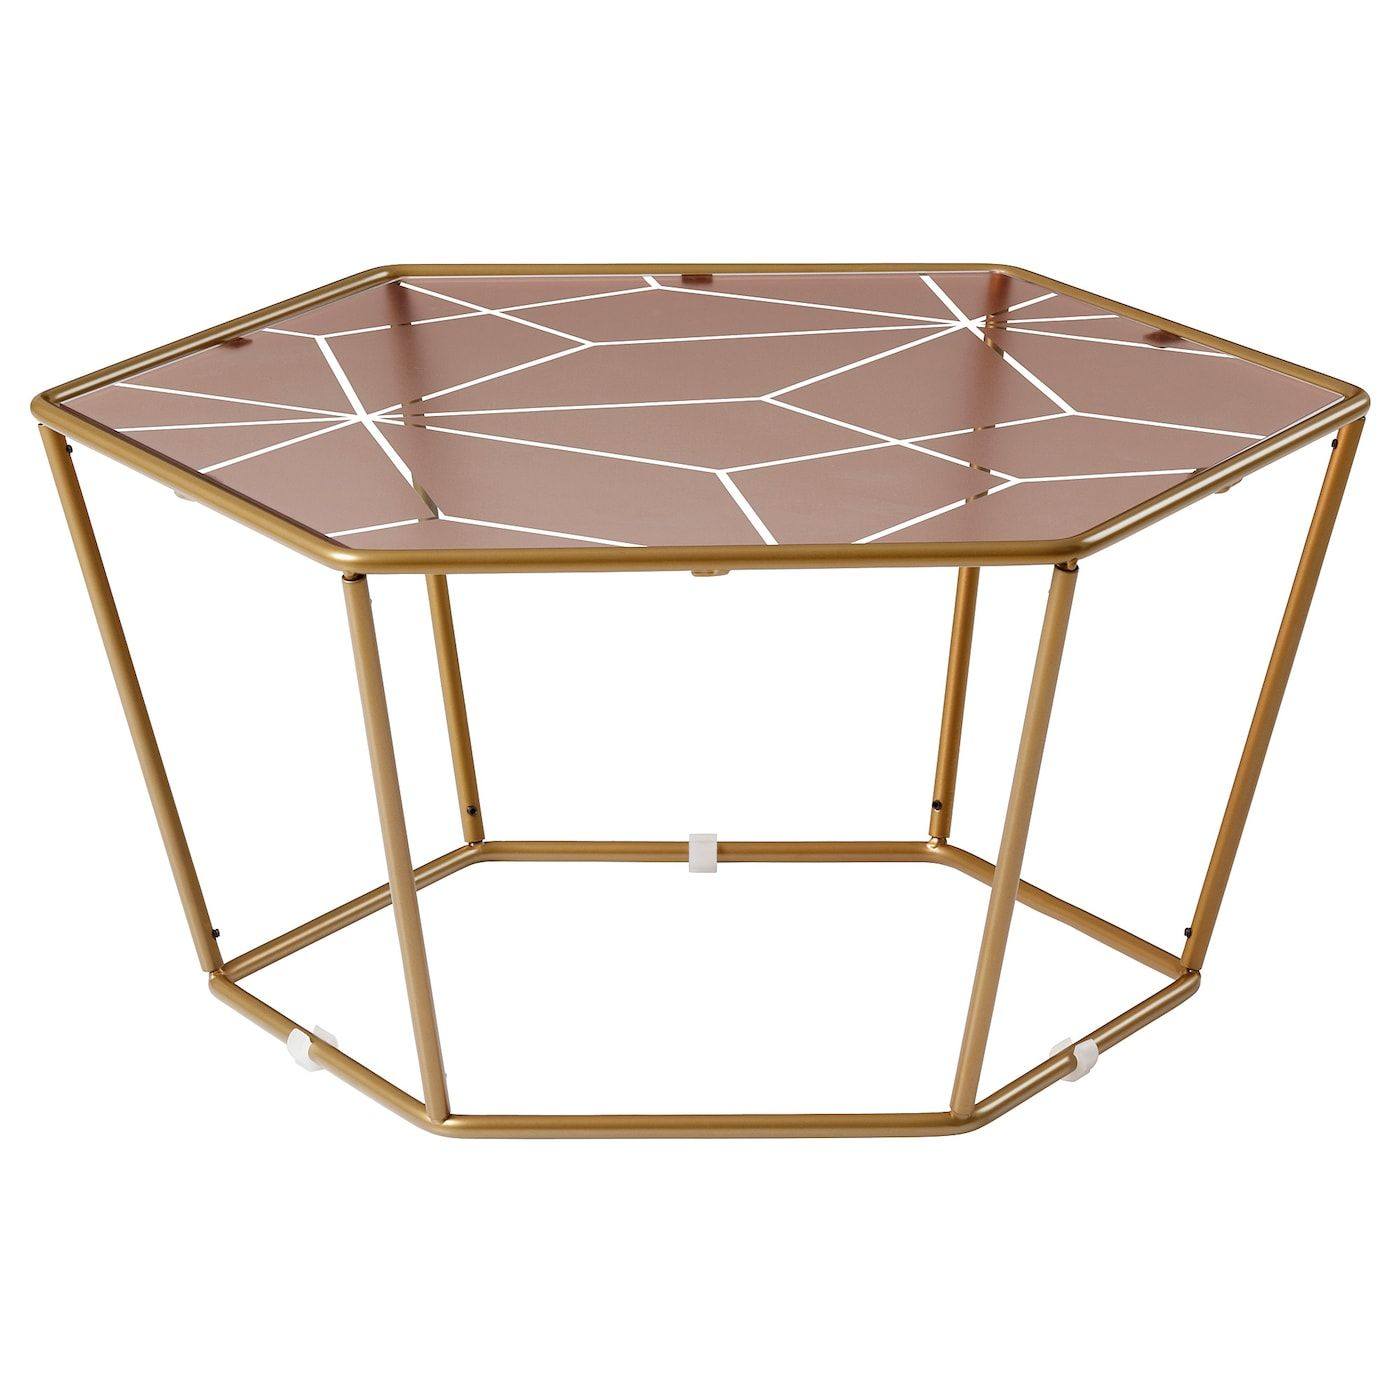 Ikea Ljuv Coffee Table Hexagonal Gold Colour Pink The Table Tops In Tempered Glass Are Stain Resistan Hexagon Coffee Table Ikea Coffee Table Coffee Table [ 1400 x 1400 Pixel ]